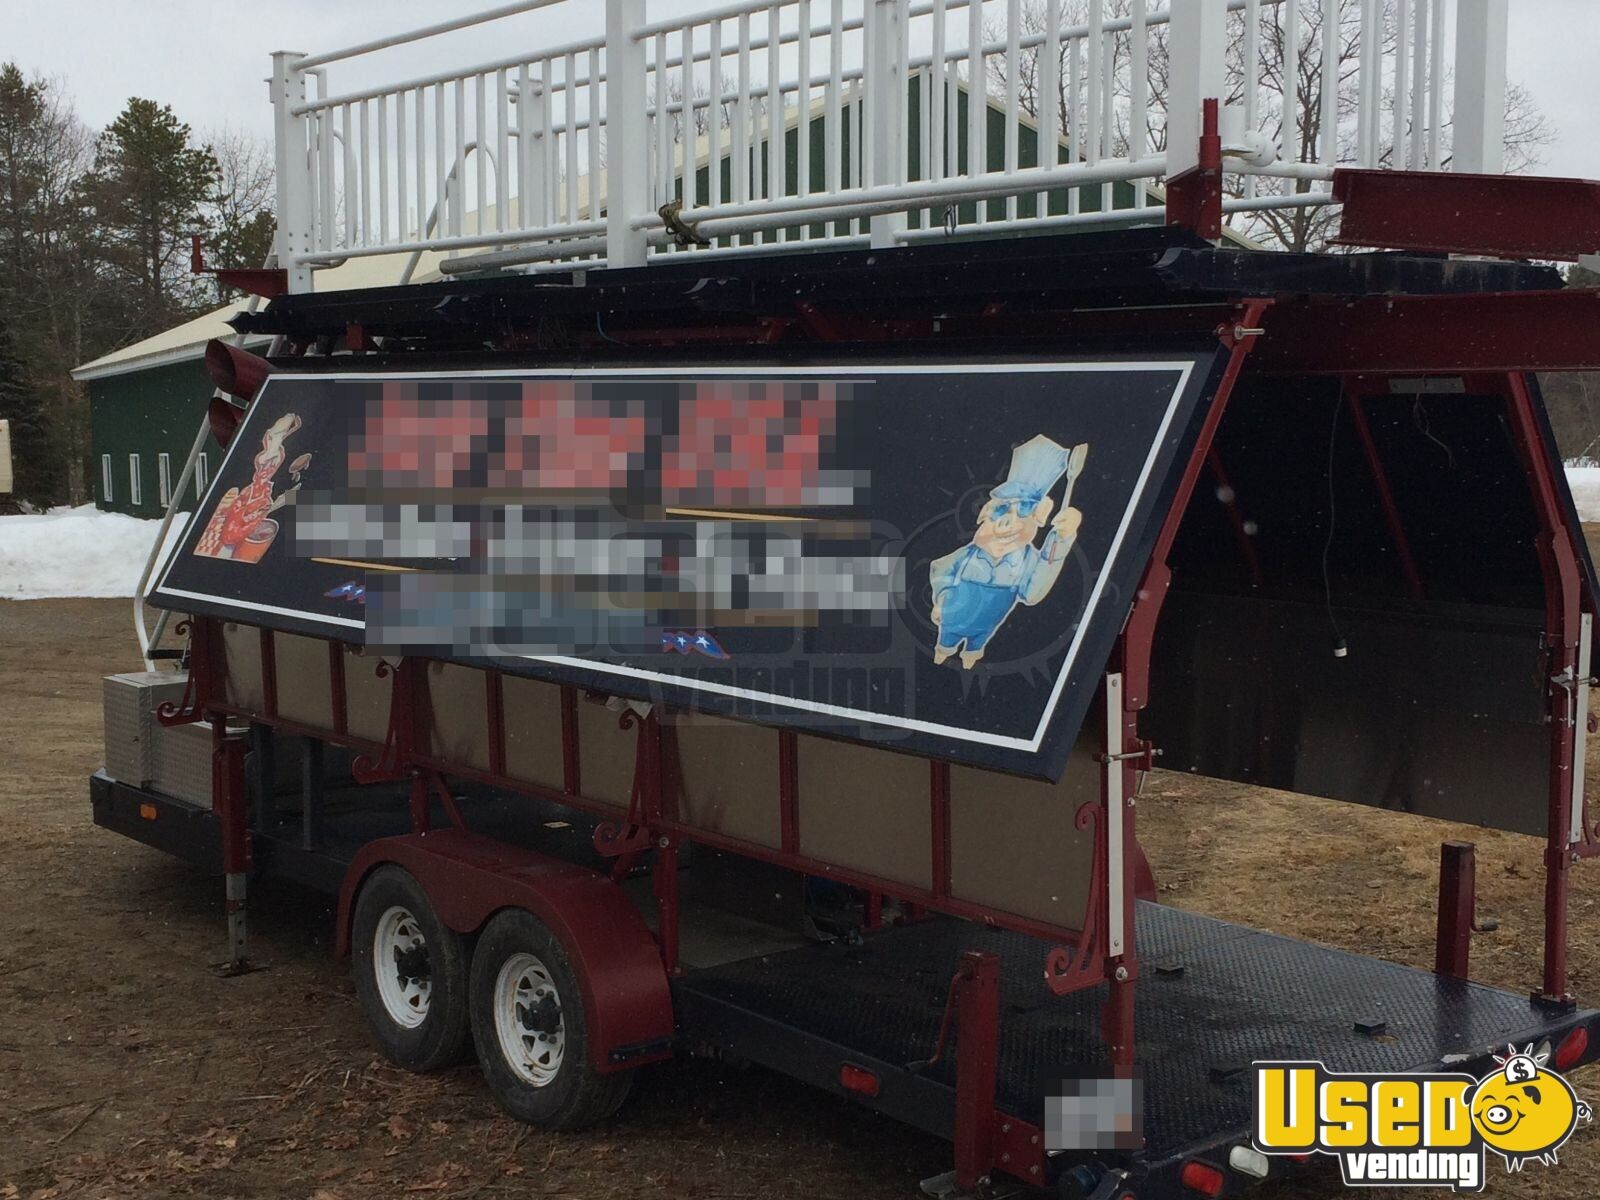 2008 Custom Barbecue Food Trailer Diamond Plated Aluminum Flooring New Hampshire for Sale - 4